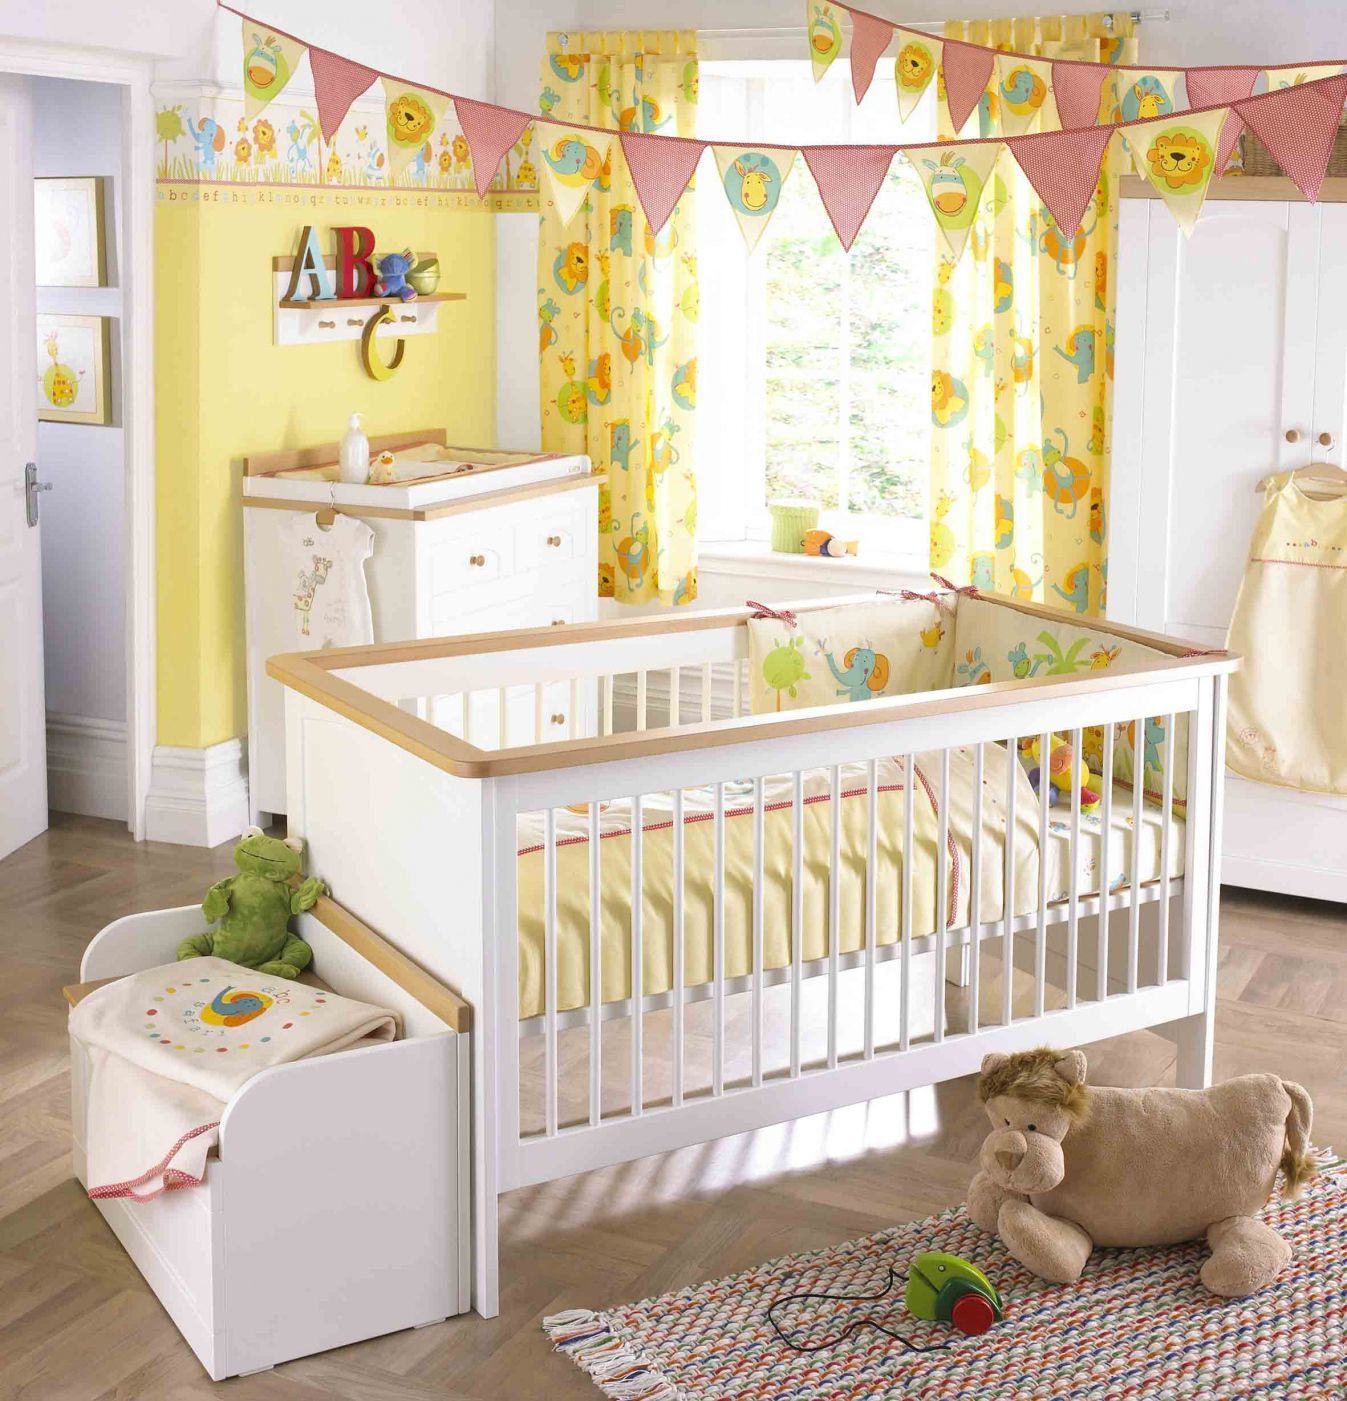 30 Dillards Baby Furniture - Interior Bedroom Paint Colors Check ...